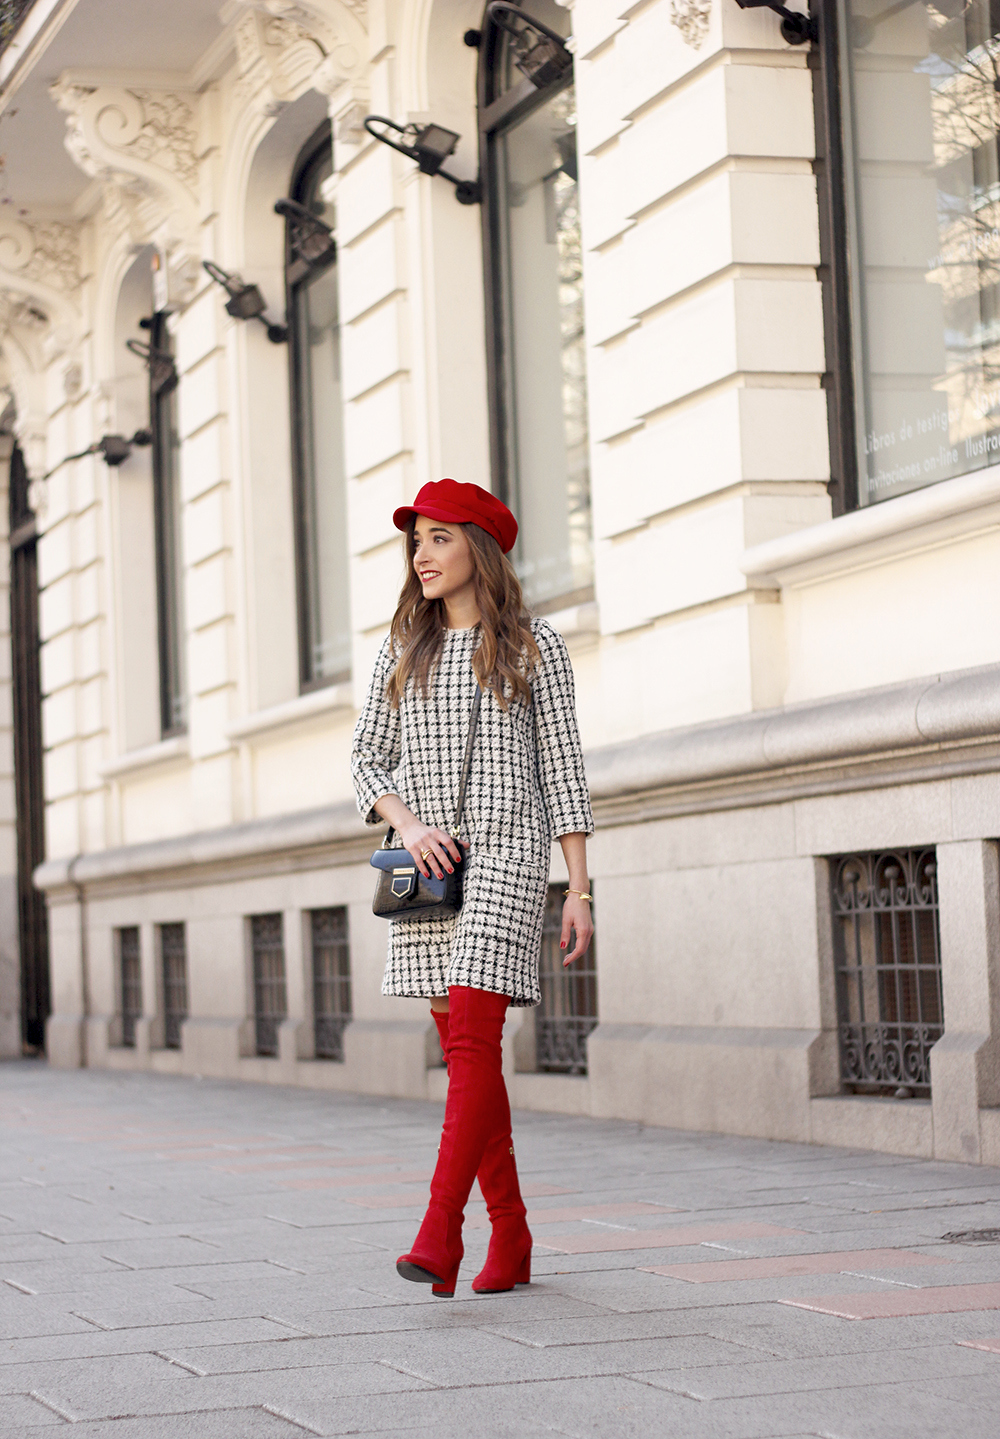 squares dress red over the knee boots givenchy bag red cap winter outfit look invierno03